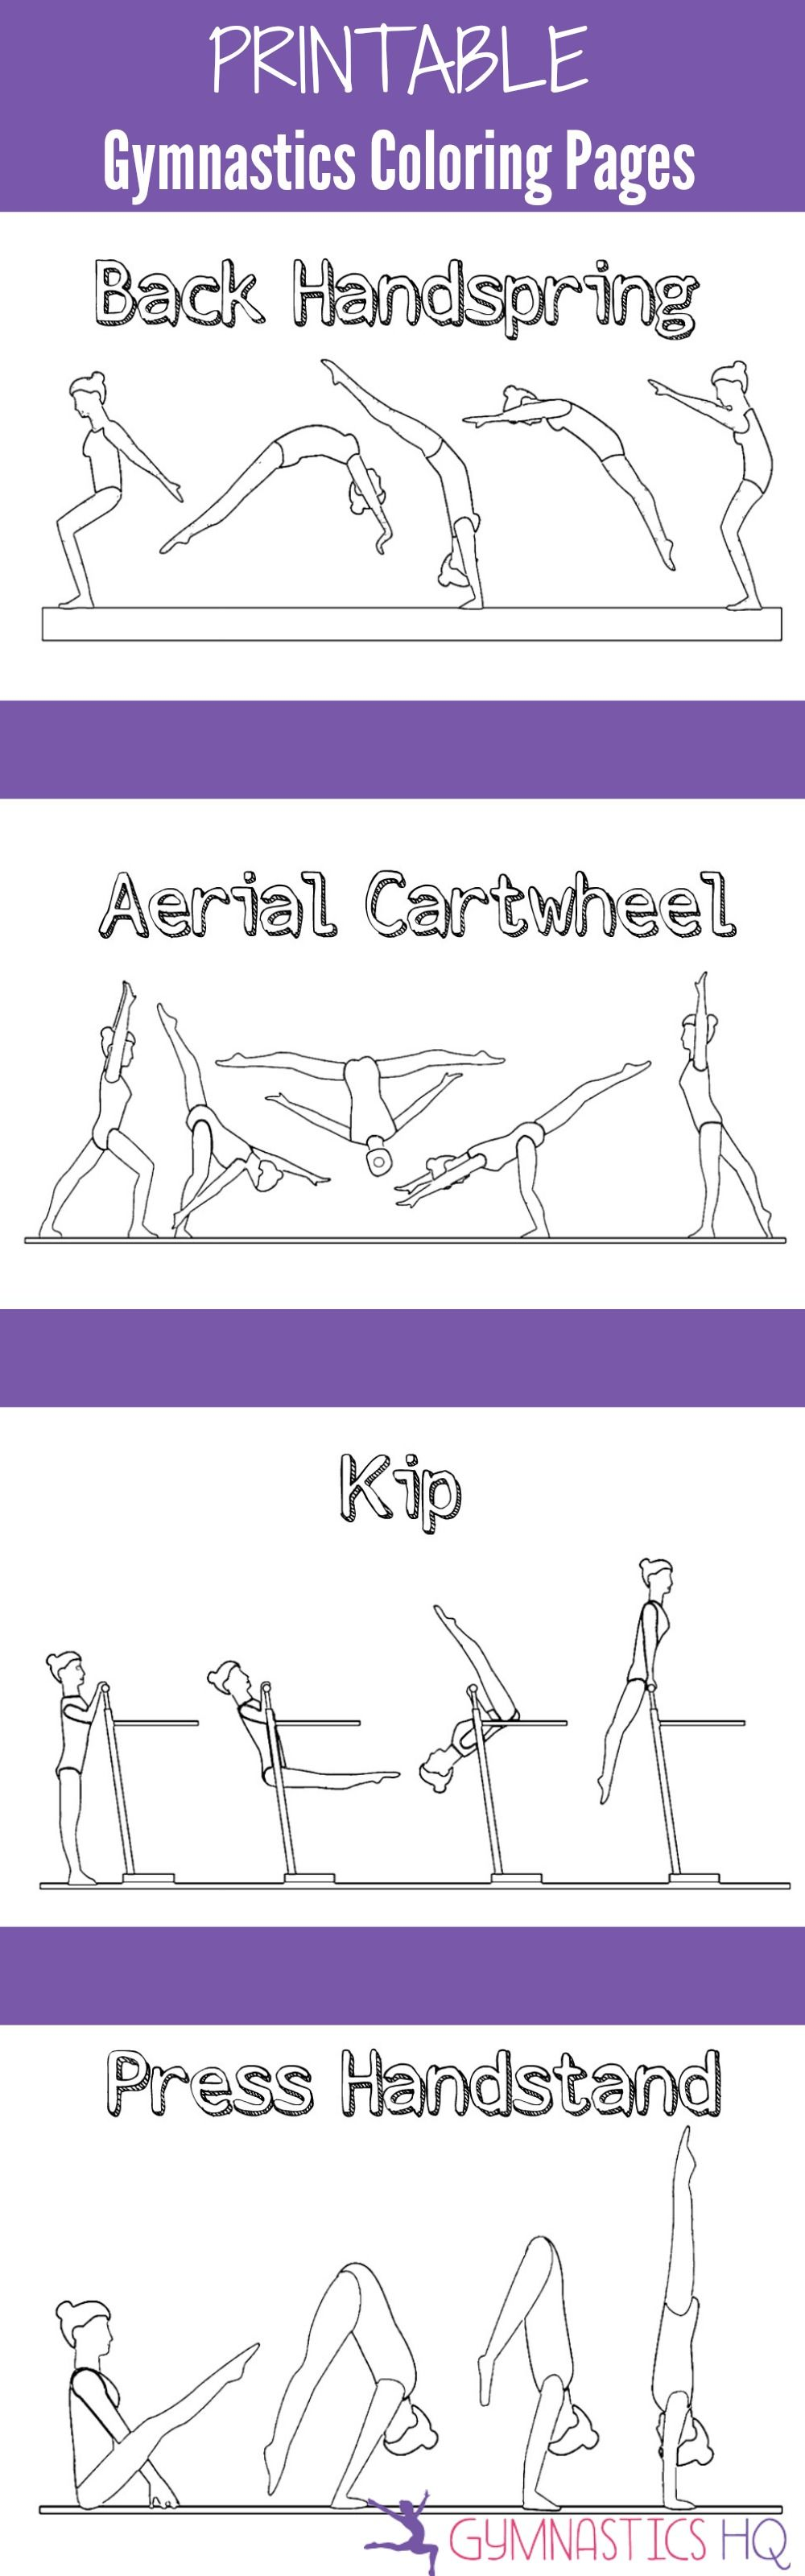 Printable Gymnastics Coloring Pages 5 pages of gymnastics skills